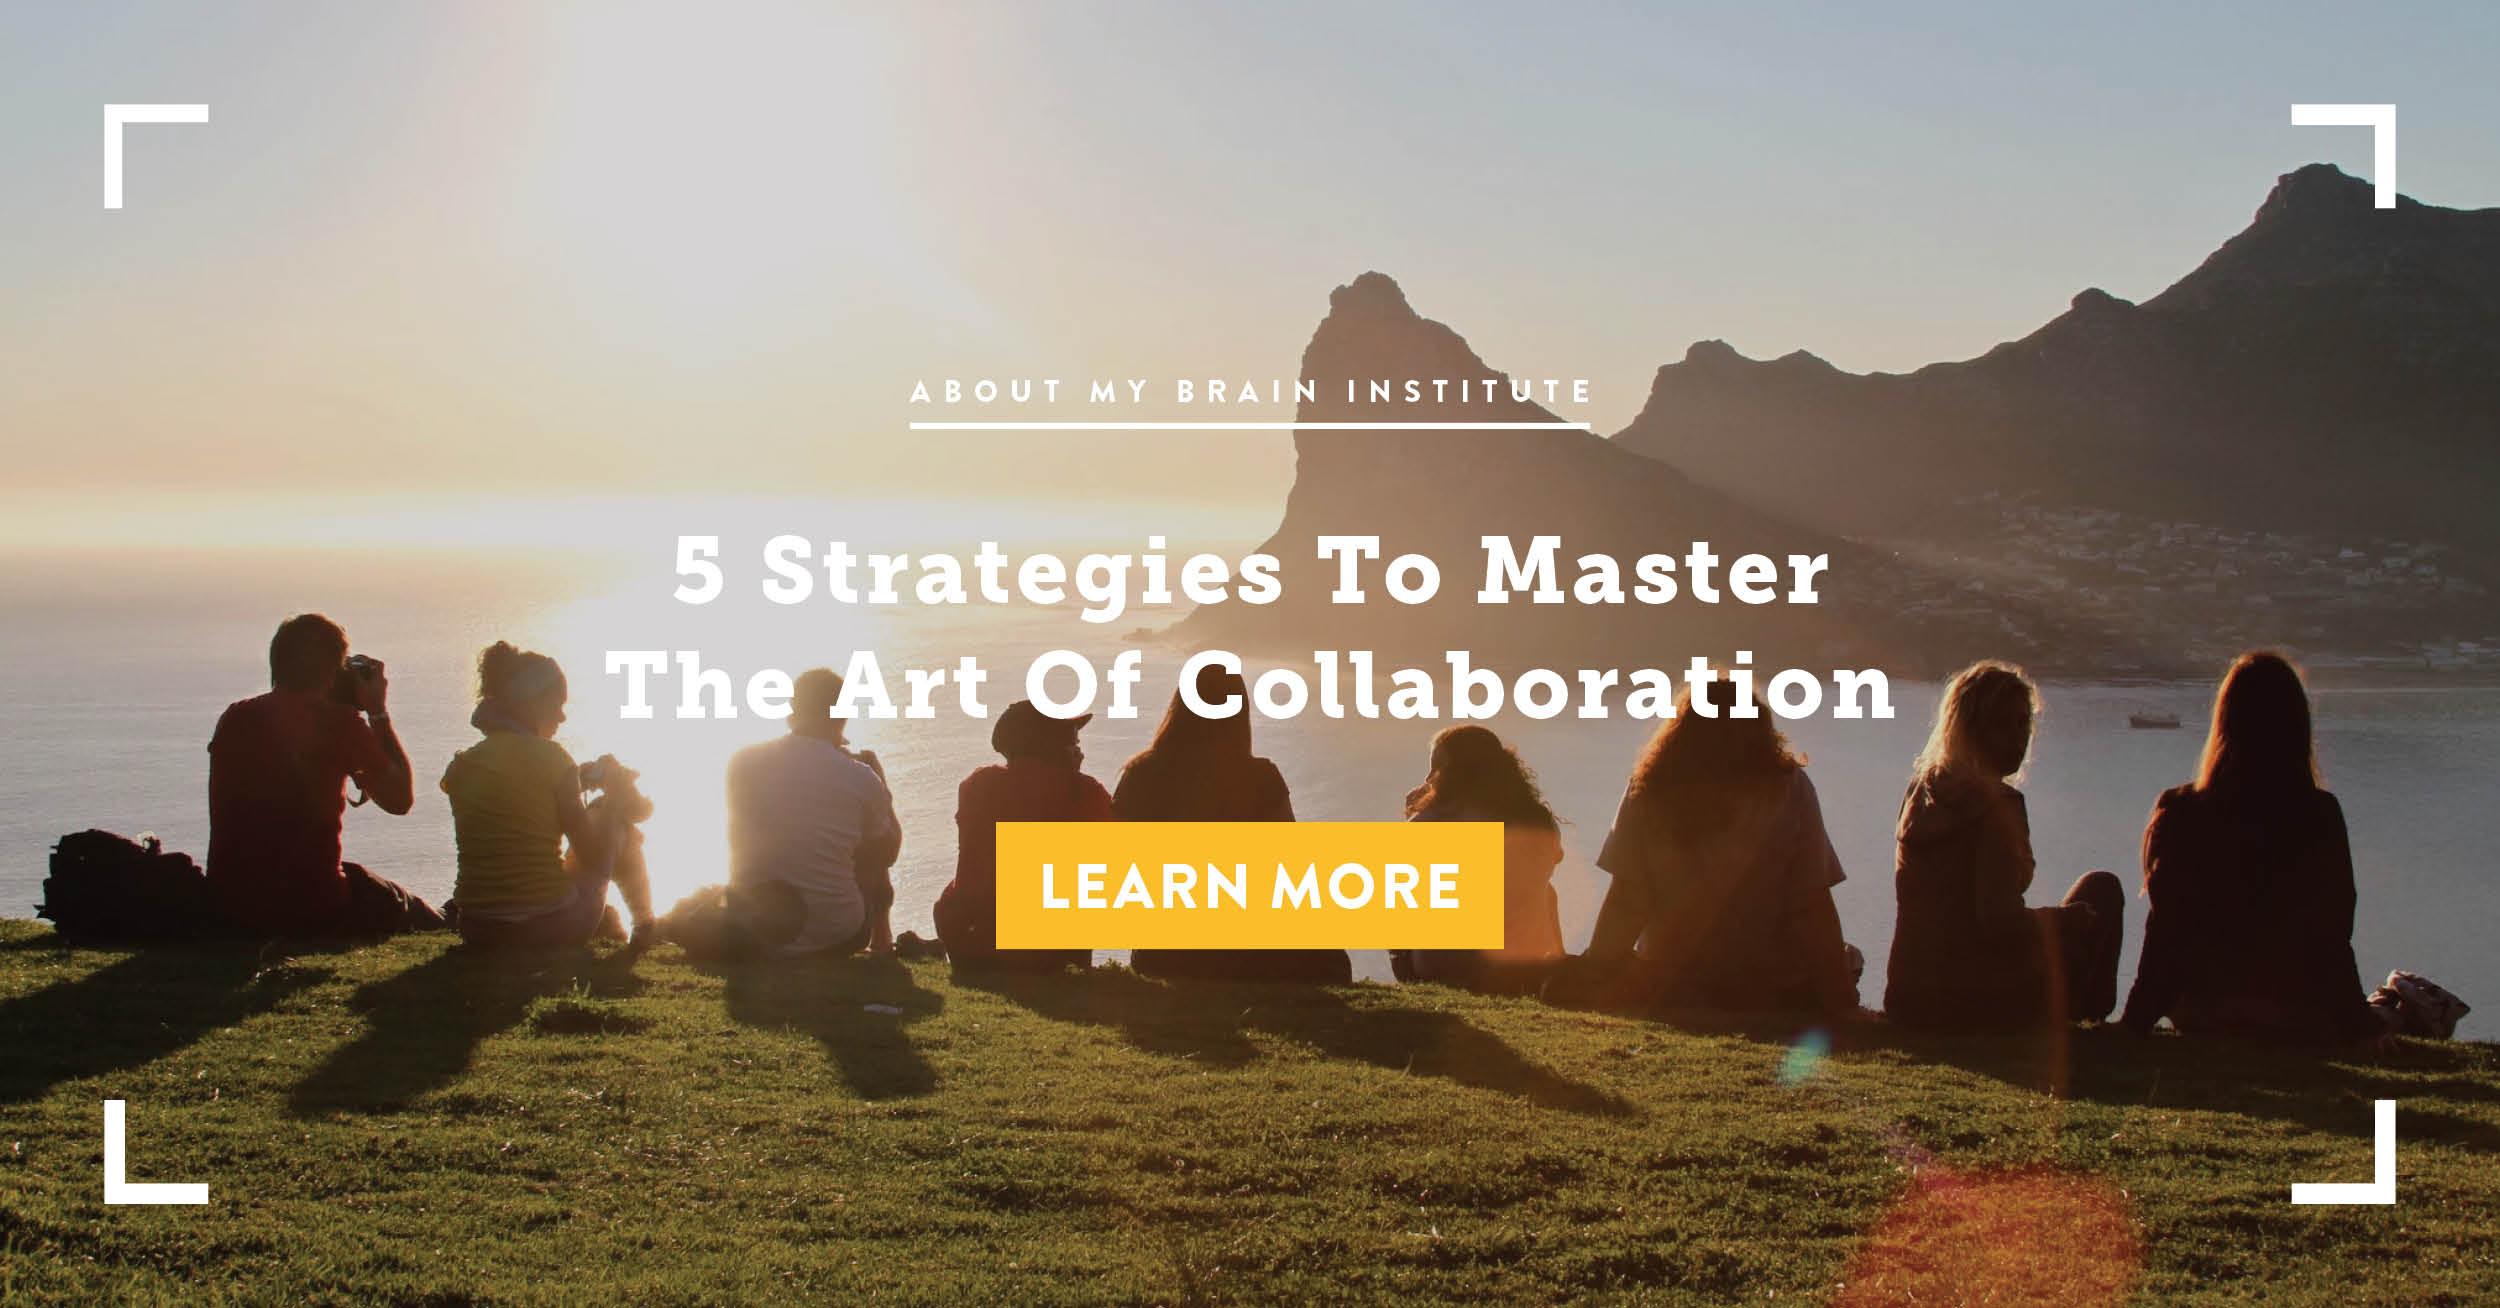 5 Strategies To Master The Art Of Collaboration